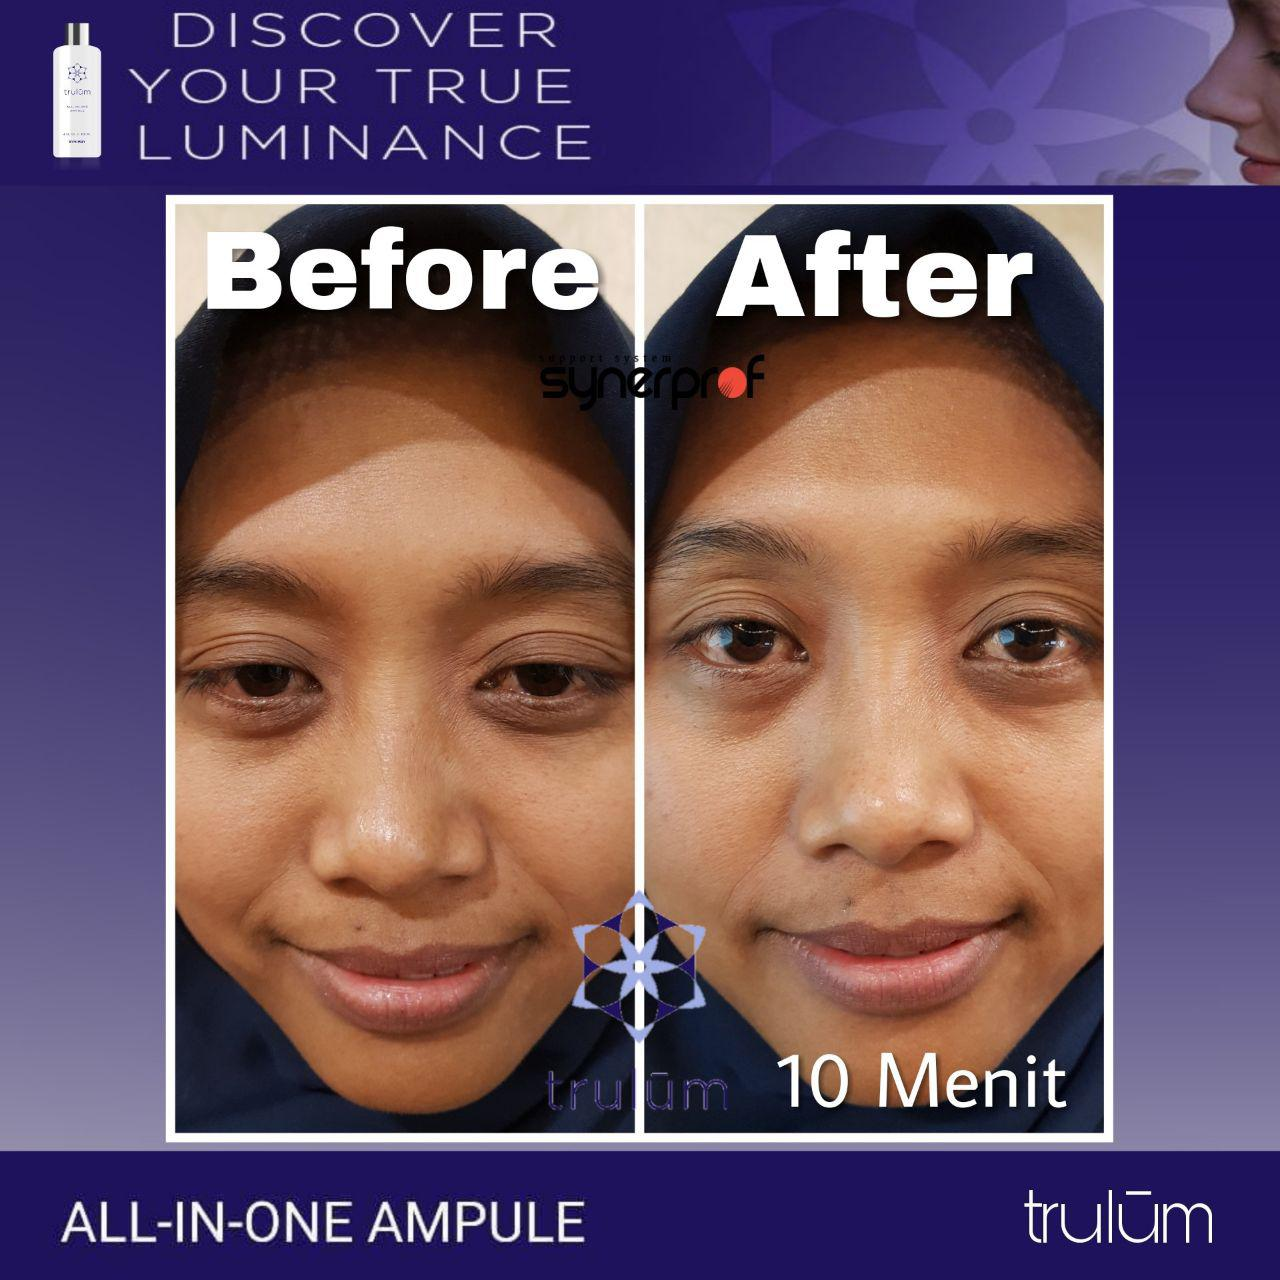 Jual Trulum All In One Ampoule Di Wirobrajan WA: 08112338376